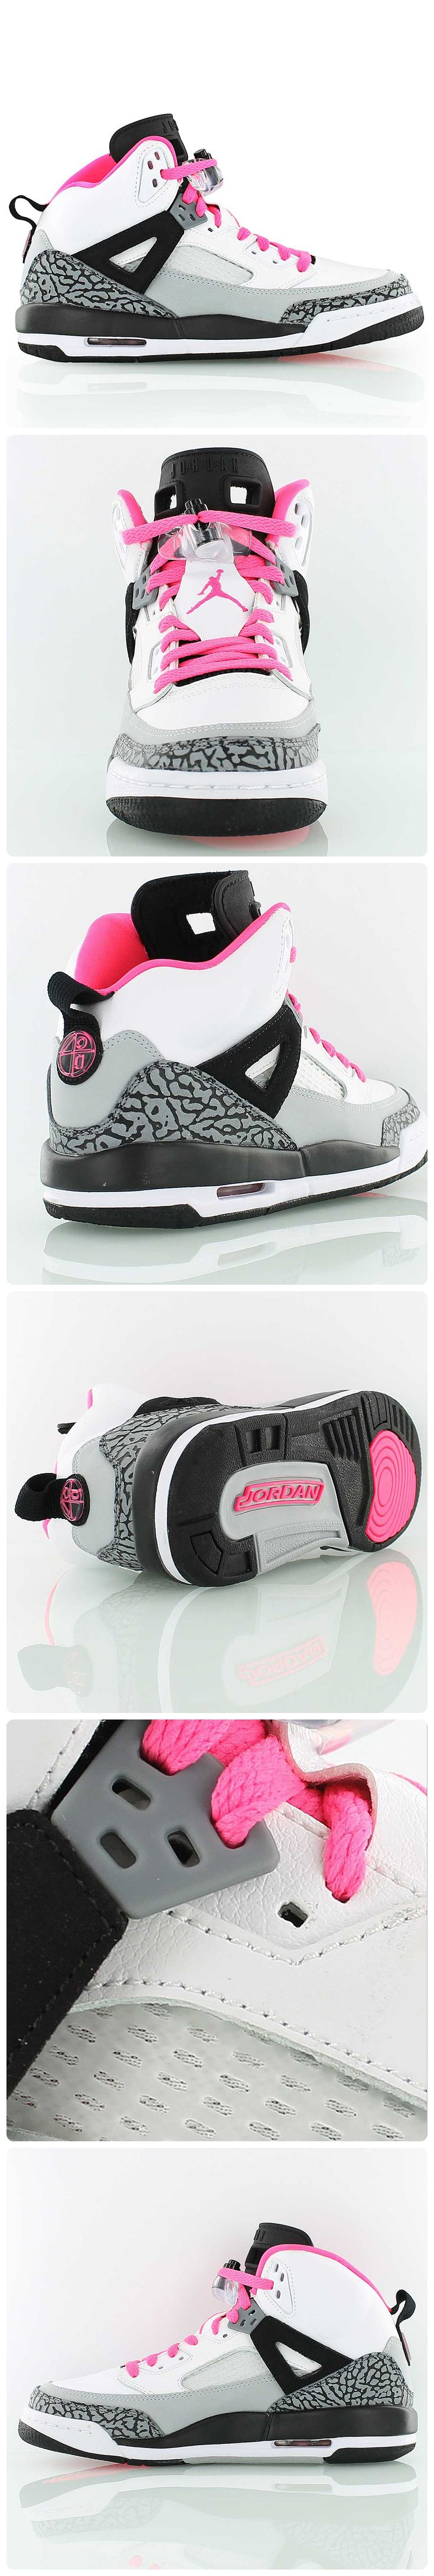 Jordan Spizike GG 'Hyper Pink' // The legendary hybrid is a mixture of the Air Jordan sneakers: AJ 3, AJ 4, AJ 5, AJ 6 and AJ 9. Designed to honor Spike Lee aka Mars Blackmon.